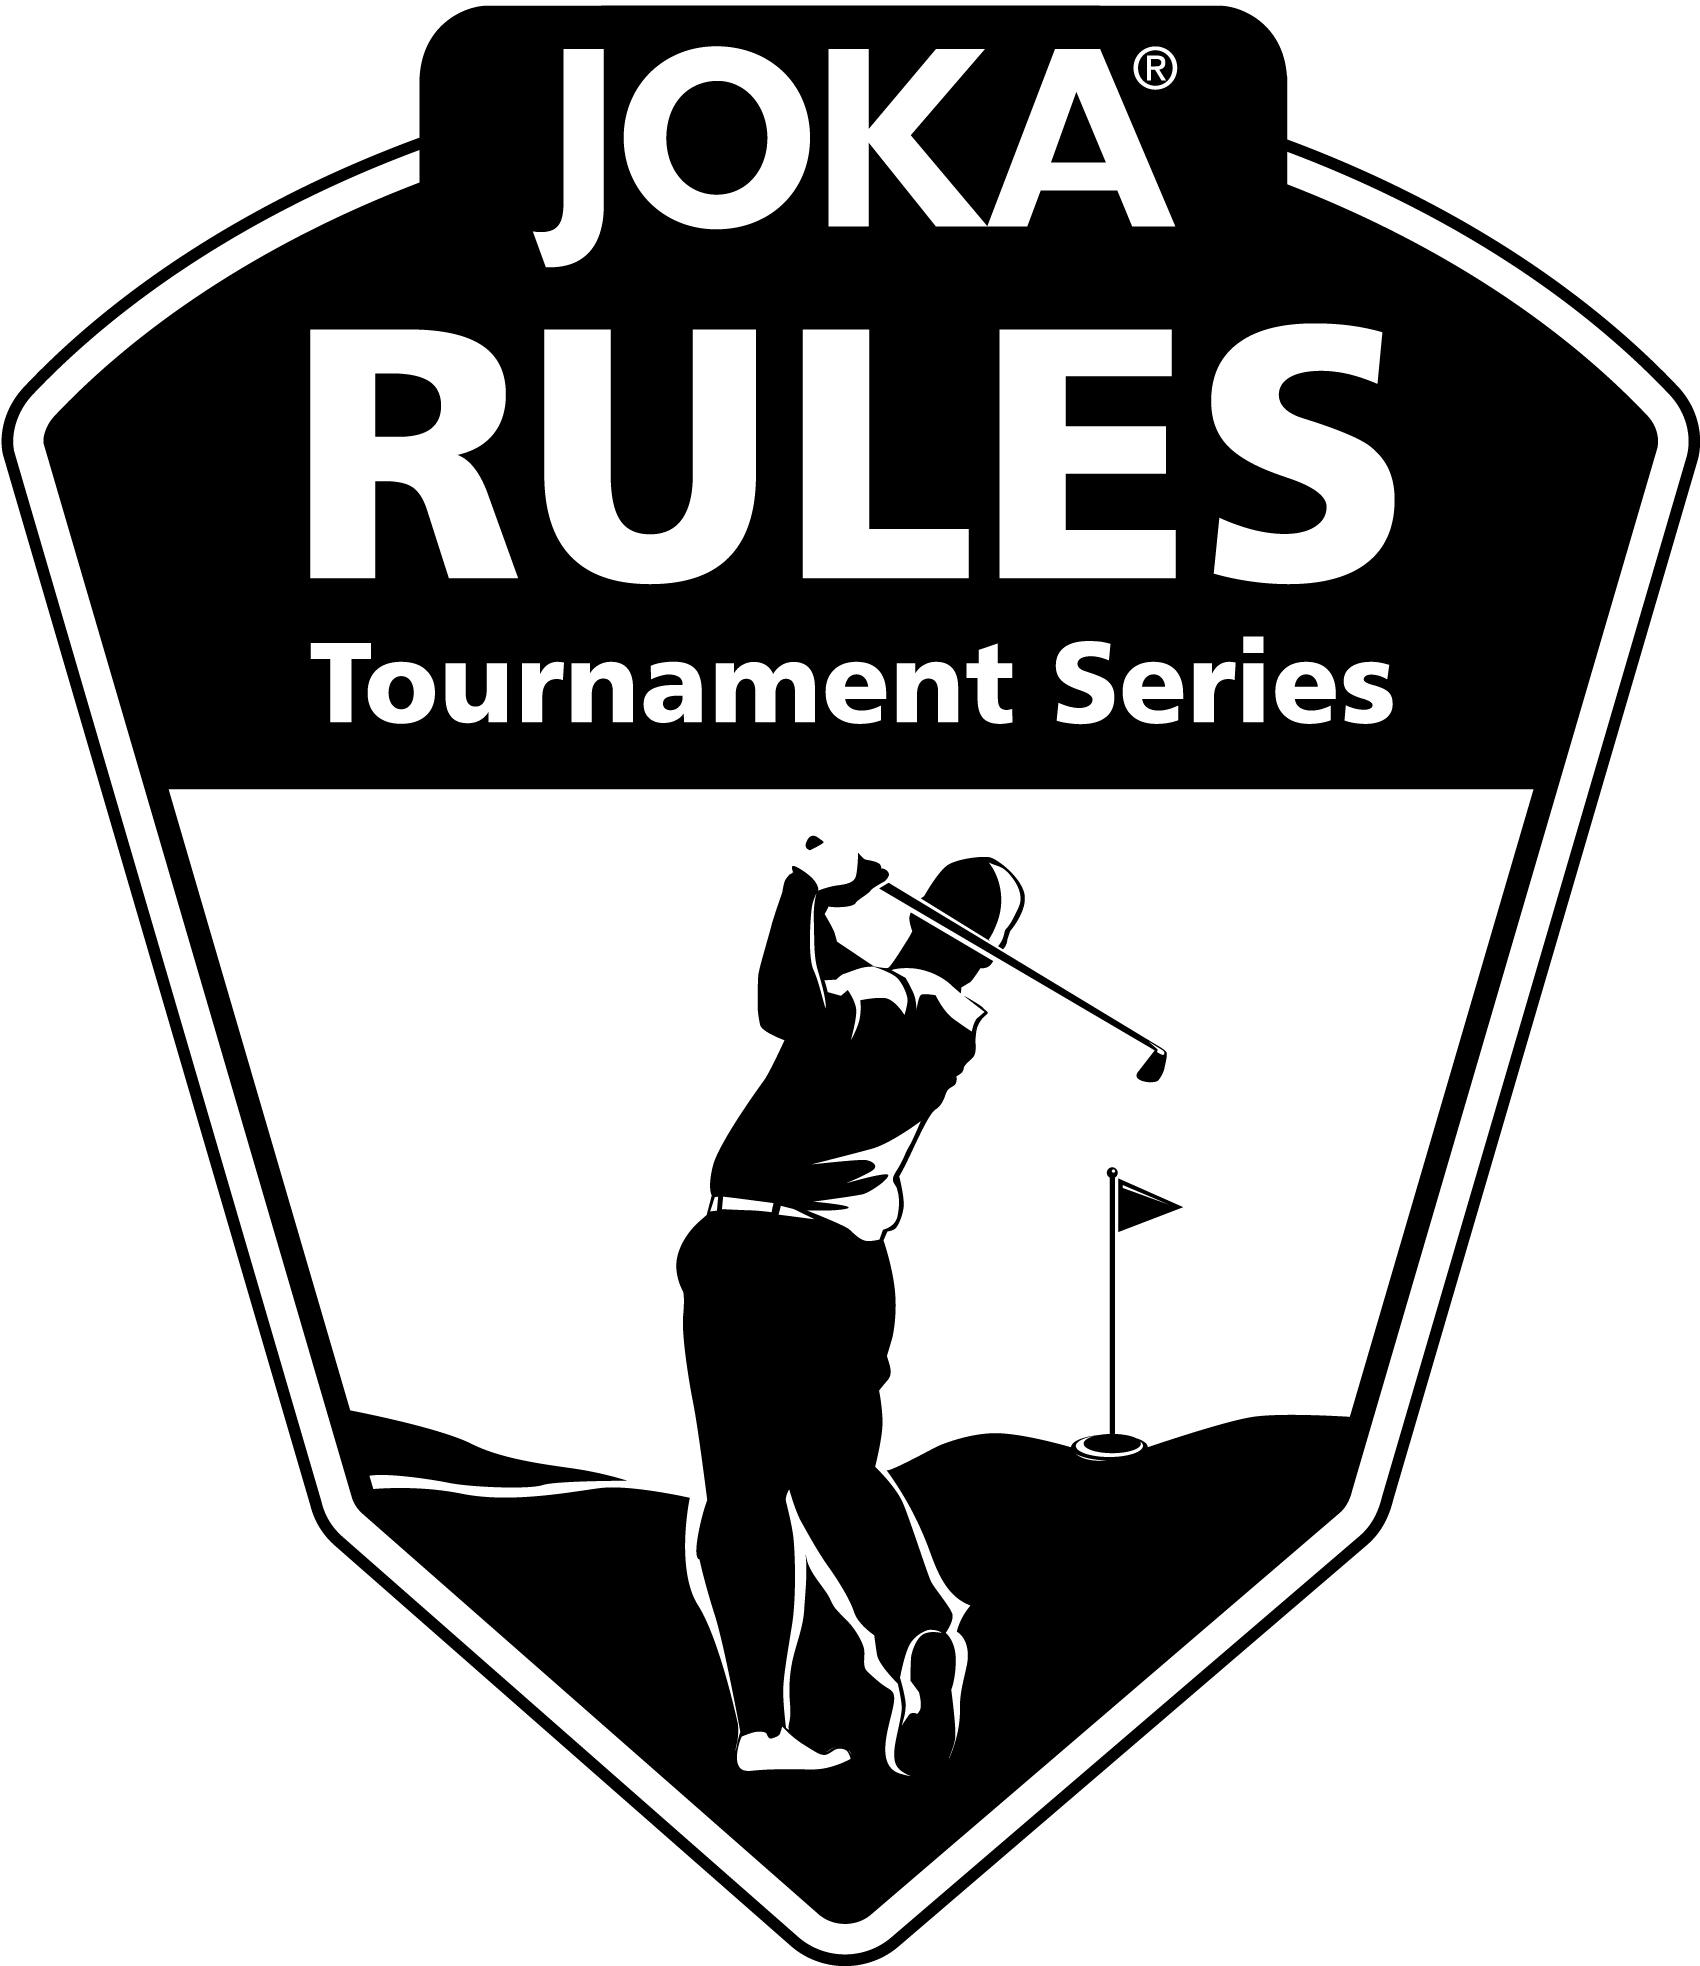 JOKA Rules Tournament Logo